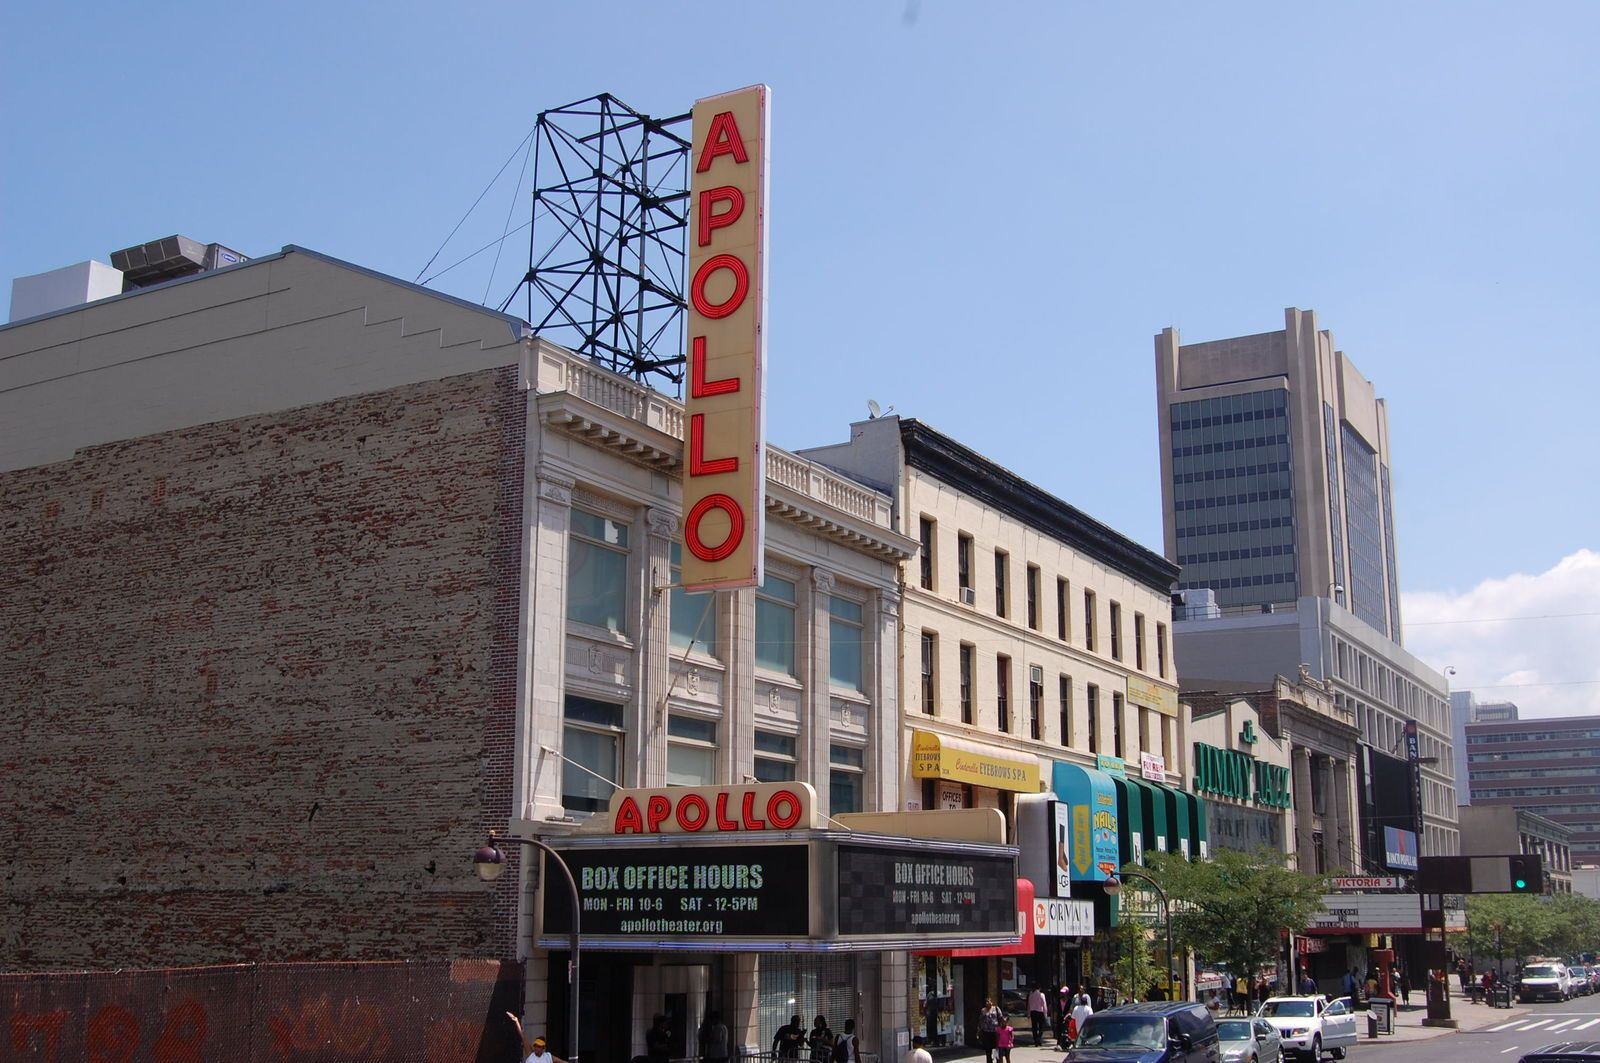 The Apollo is one of the most influential venues in the world, many American stars were discovered or performed on its legendary stage.